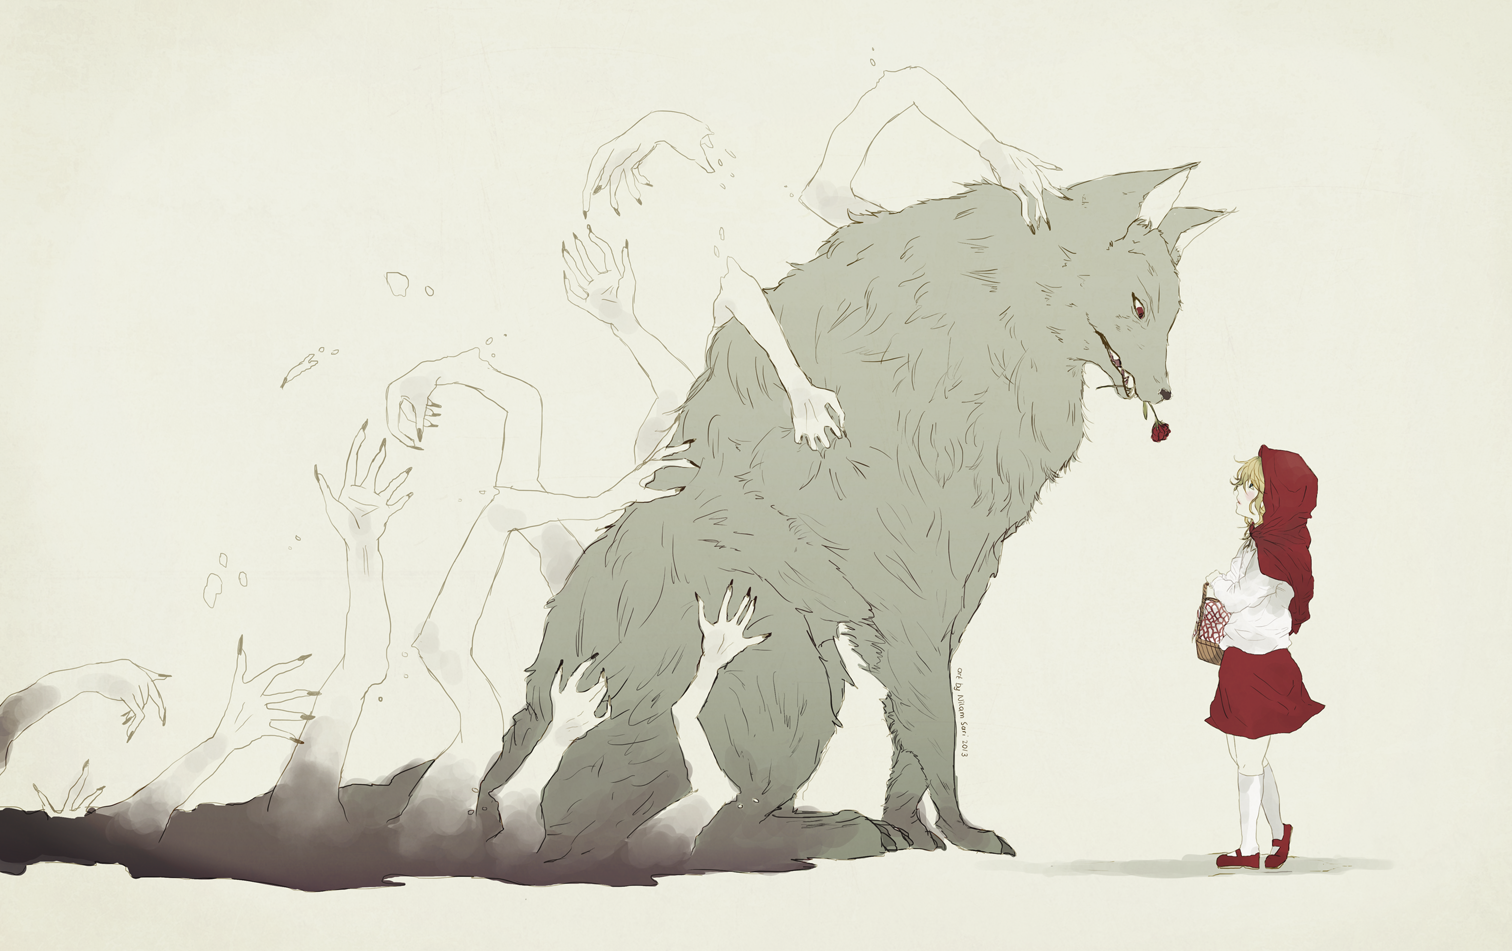 dear little red riding hood by nilampwns